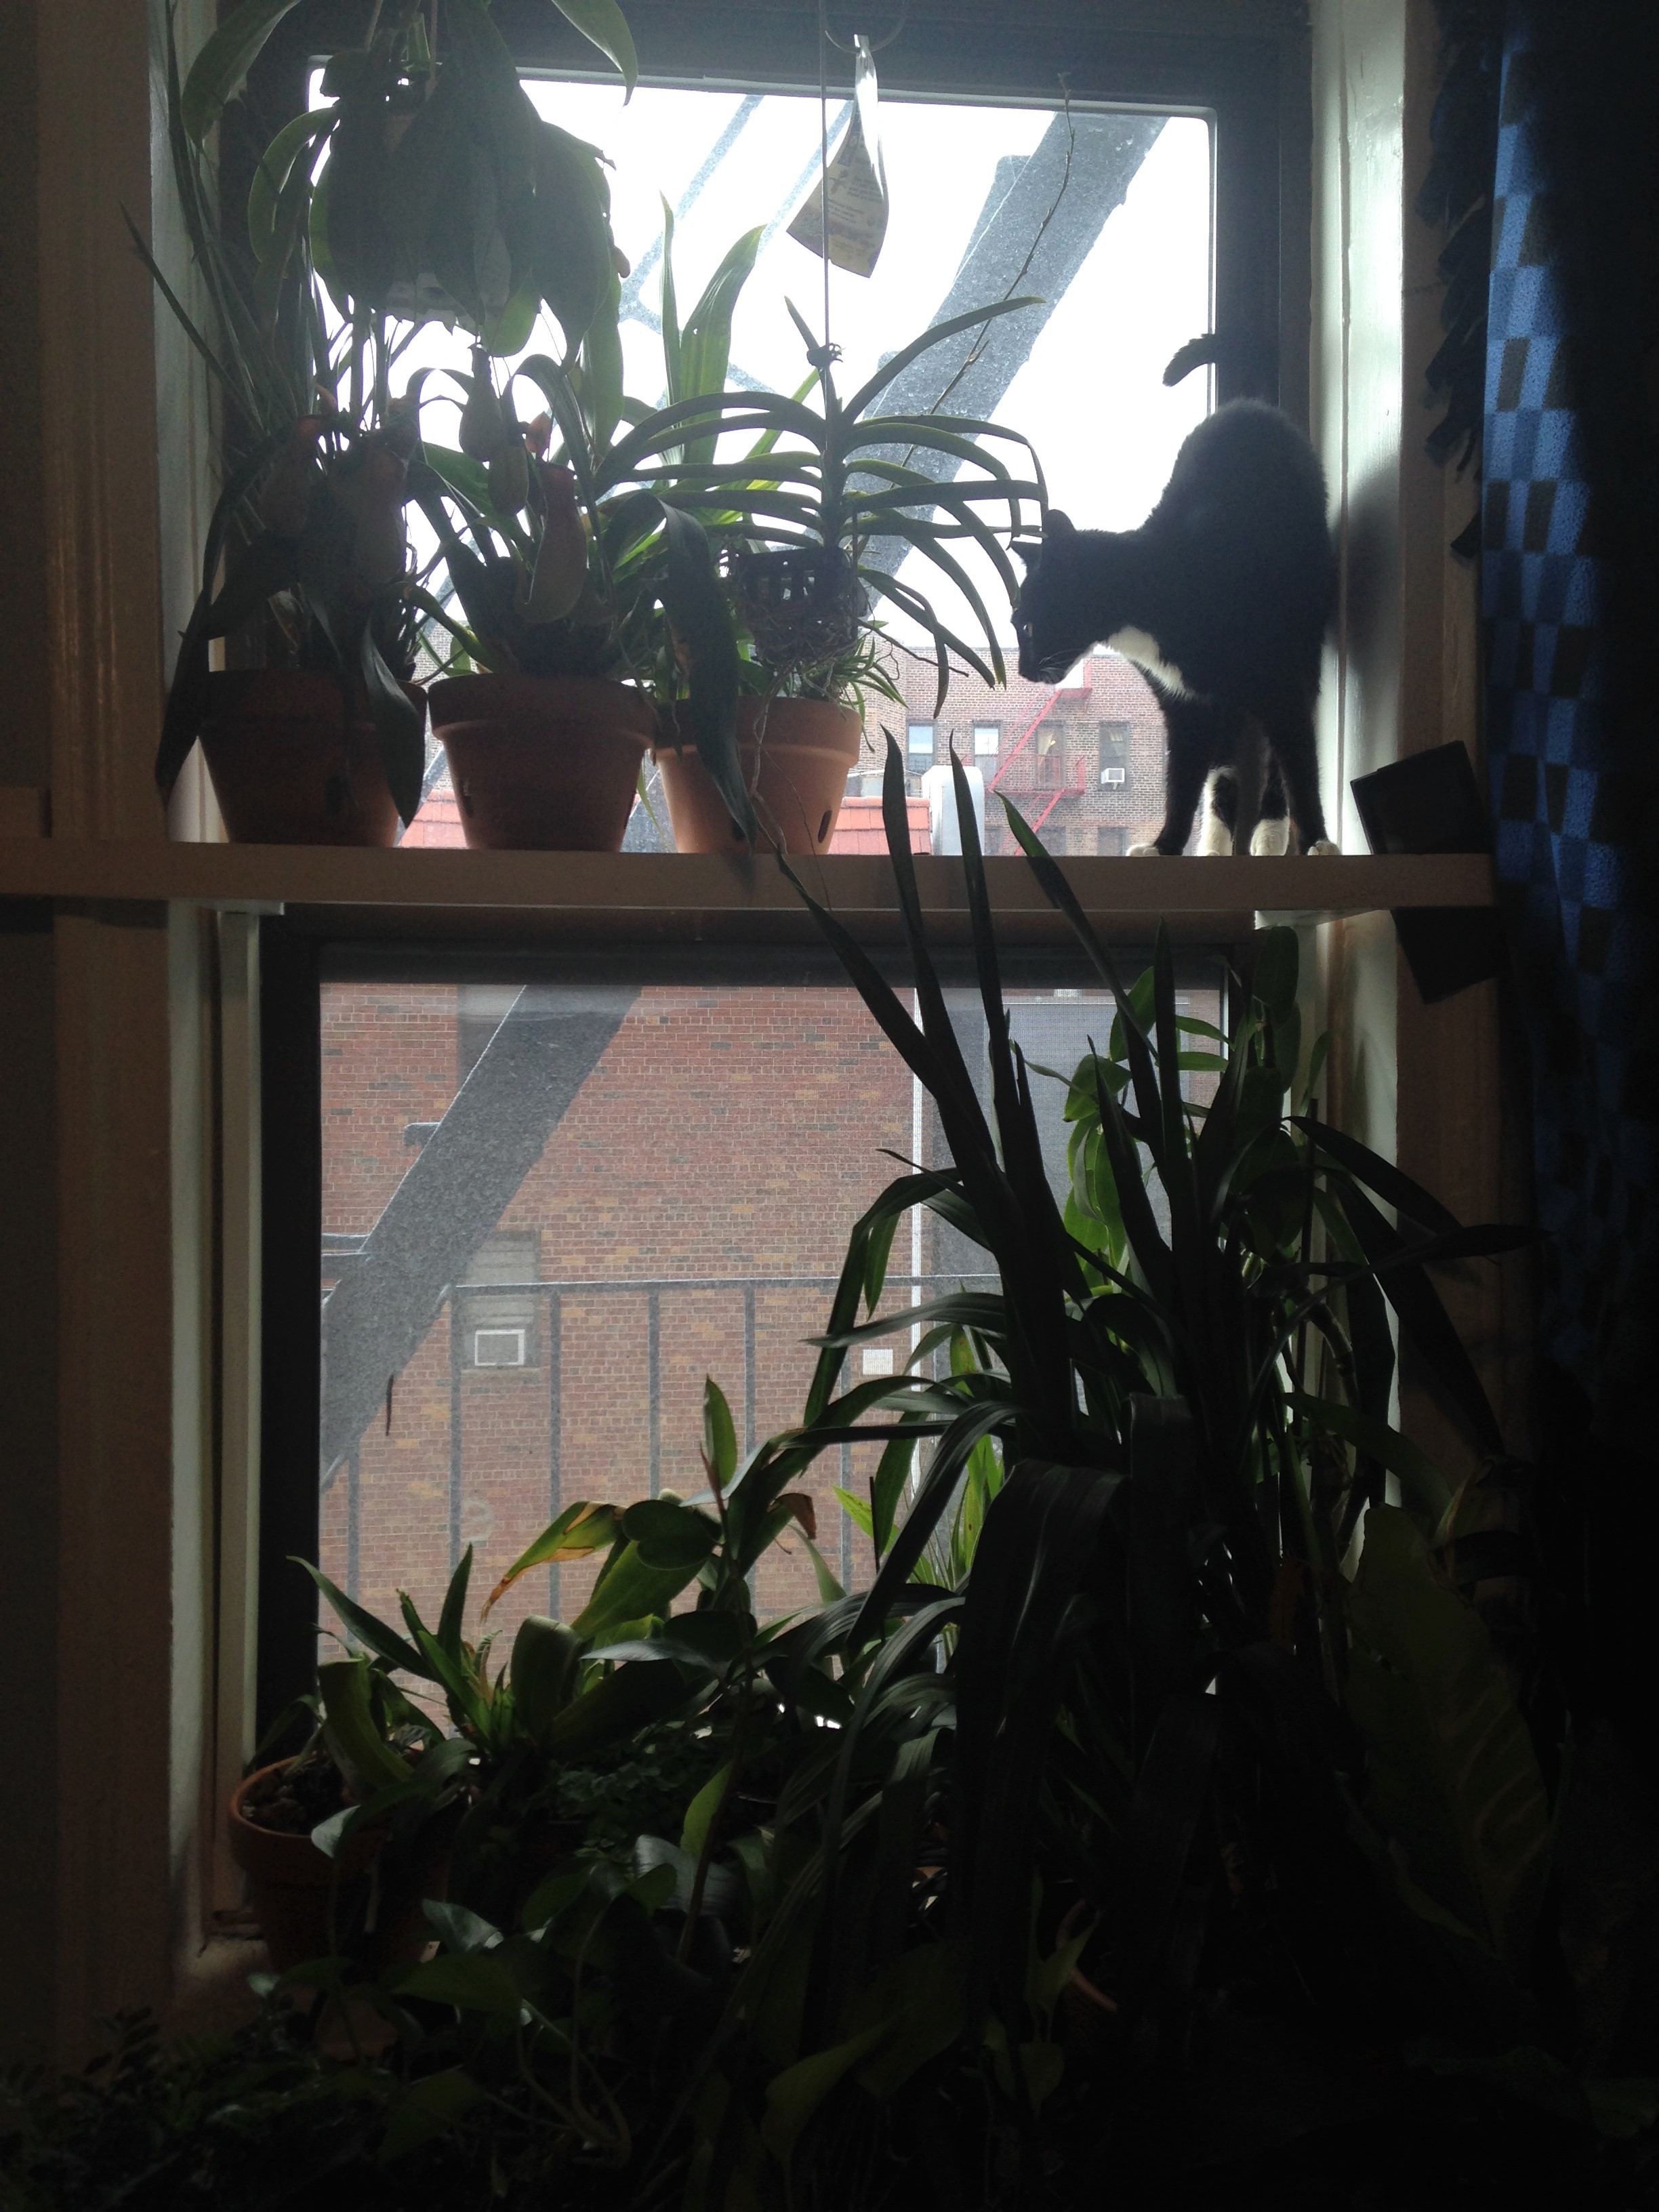 Our bedroom window filled to the brim with orchids and doubling as a cat perch for our little Chaussette.